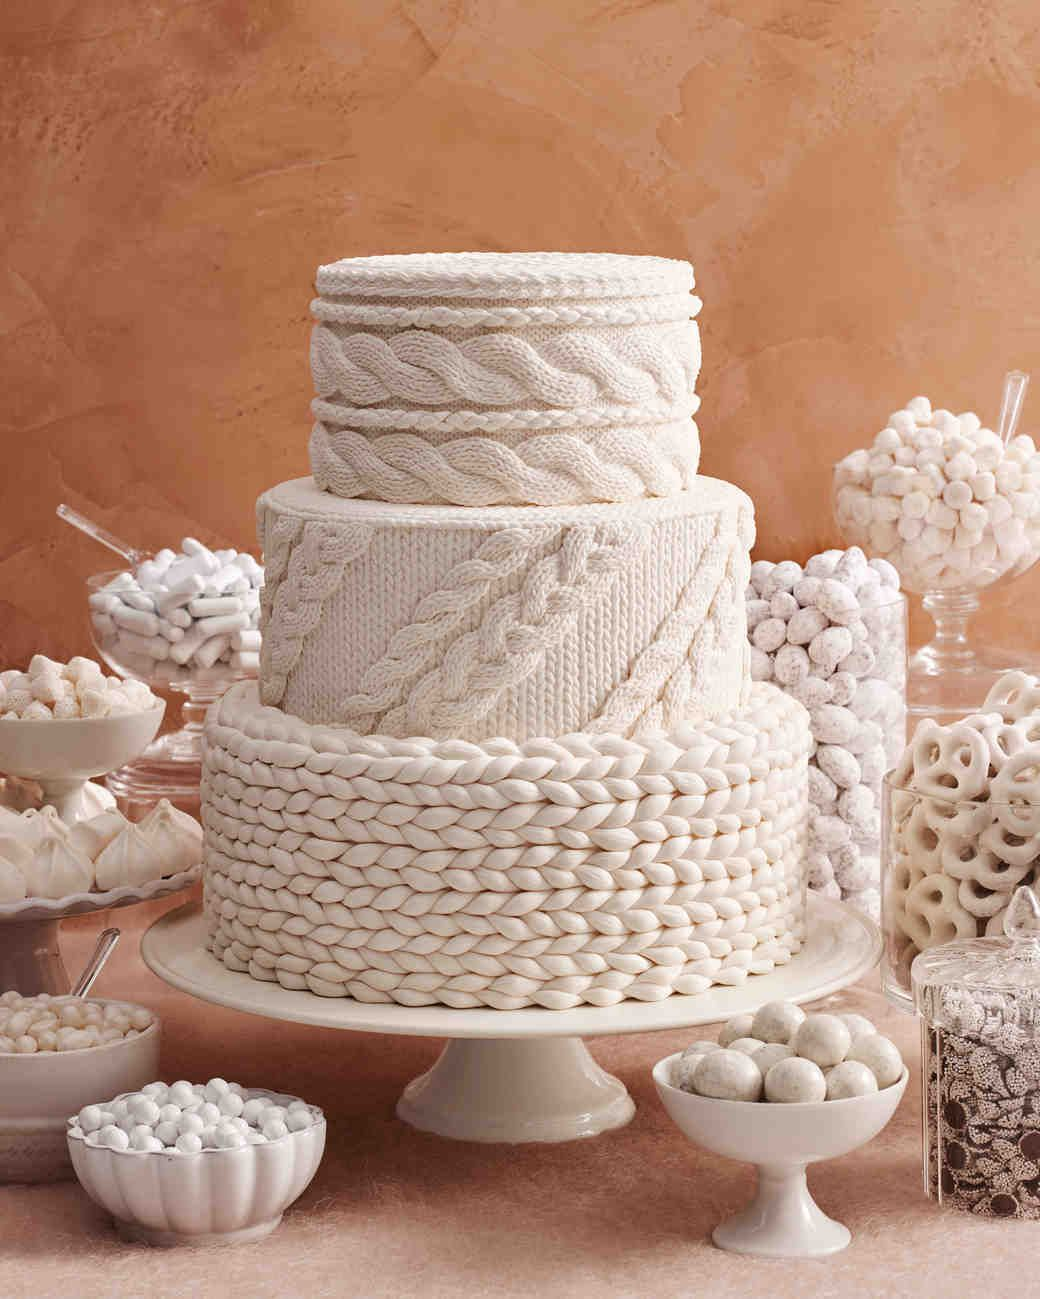 These fabricinspired wedding cakes make for fashionable desserts